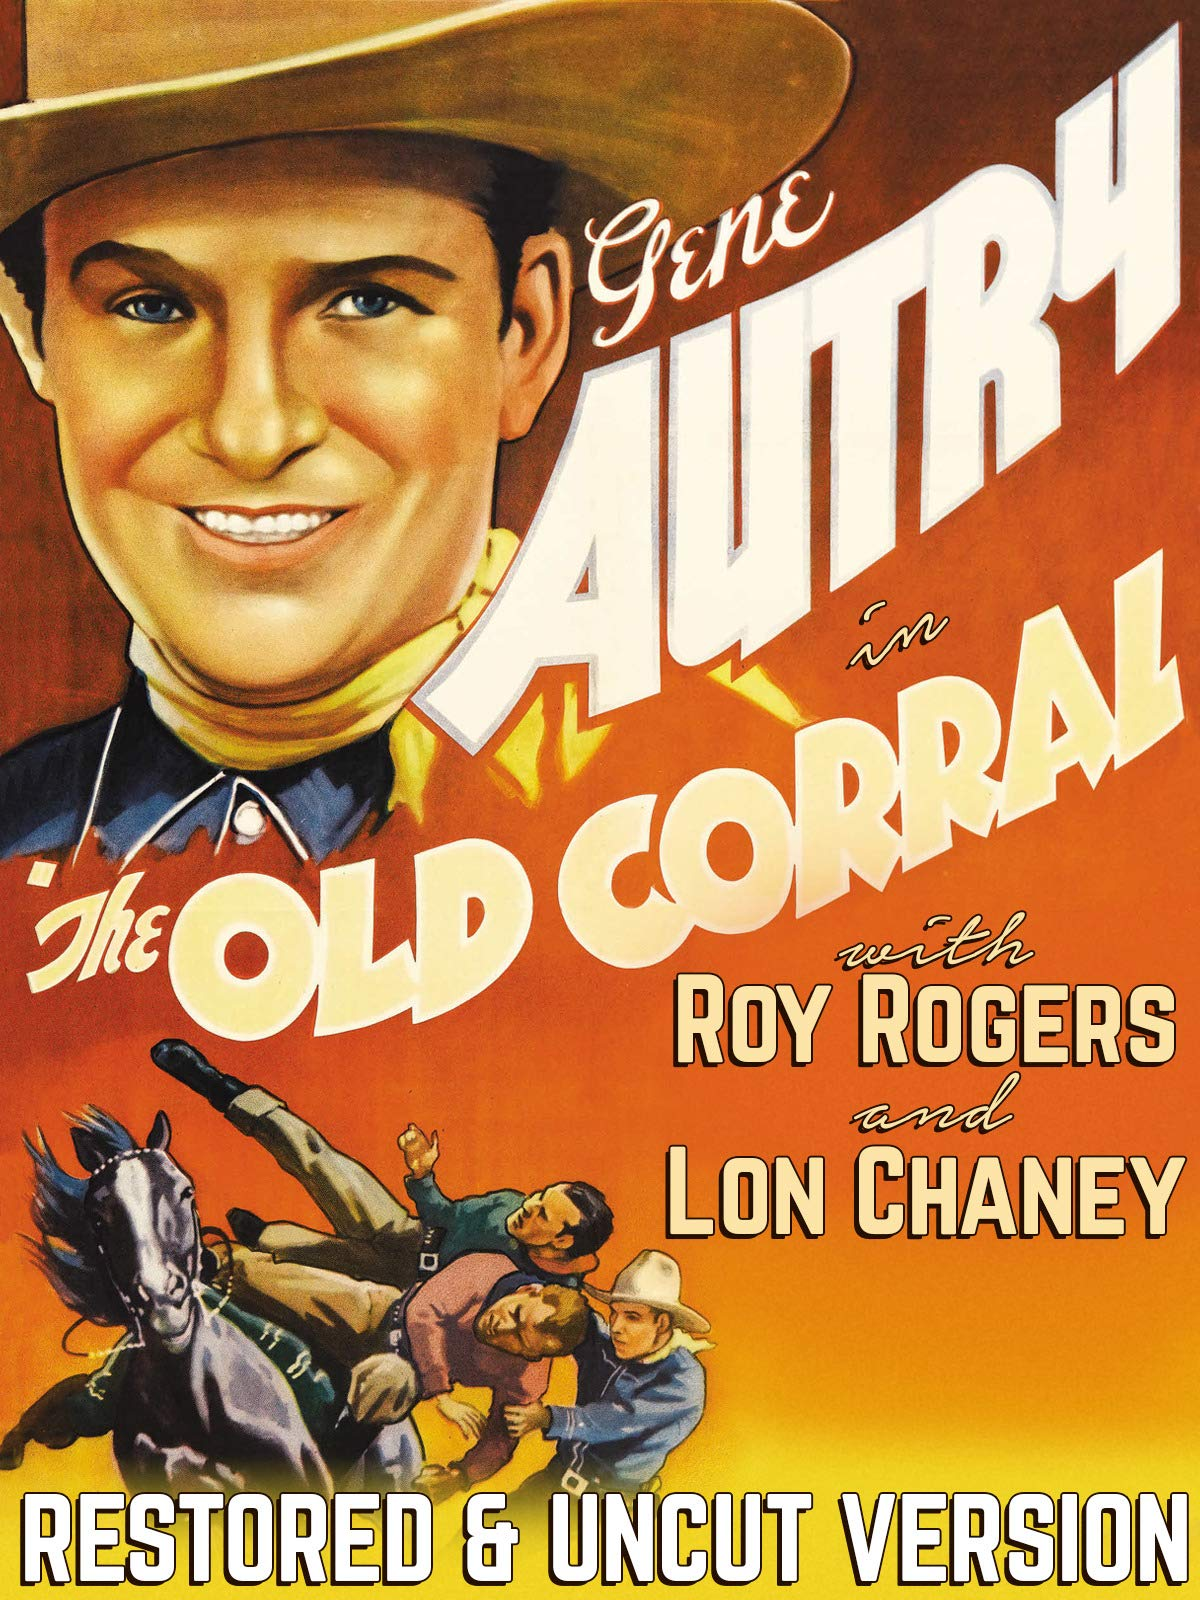 "Gene Autry in ""The Old Corral"" - With Roy Rogers & Lon Chaney, Restored & Uncut Version"